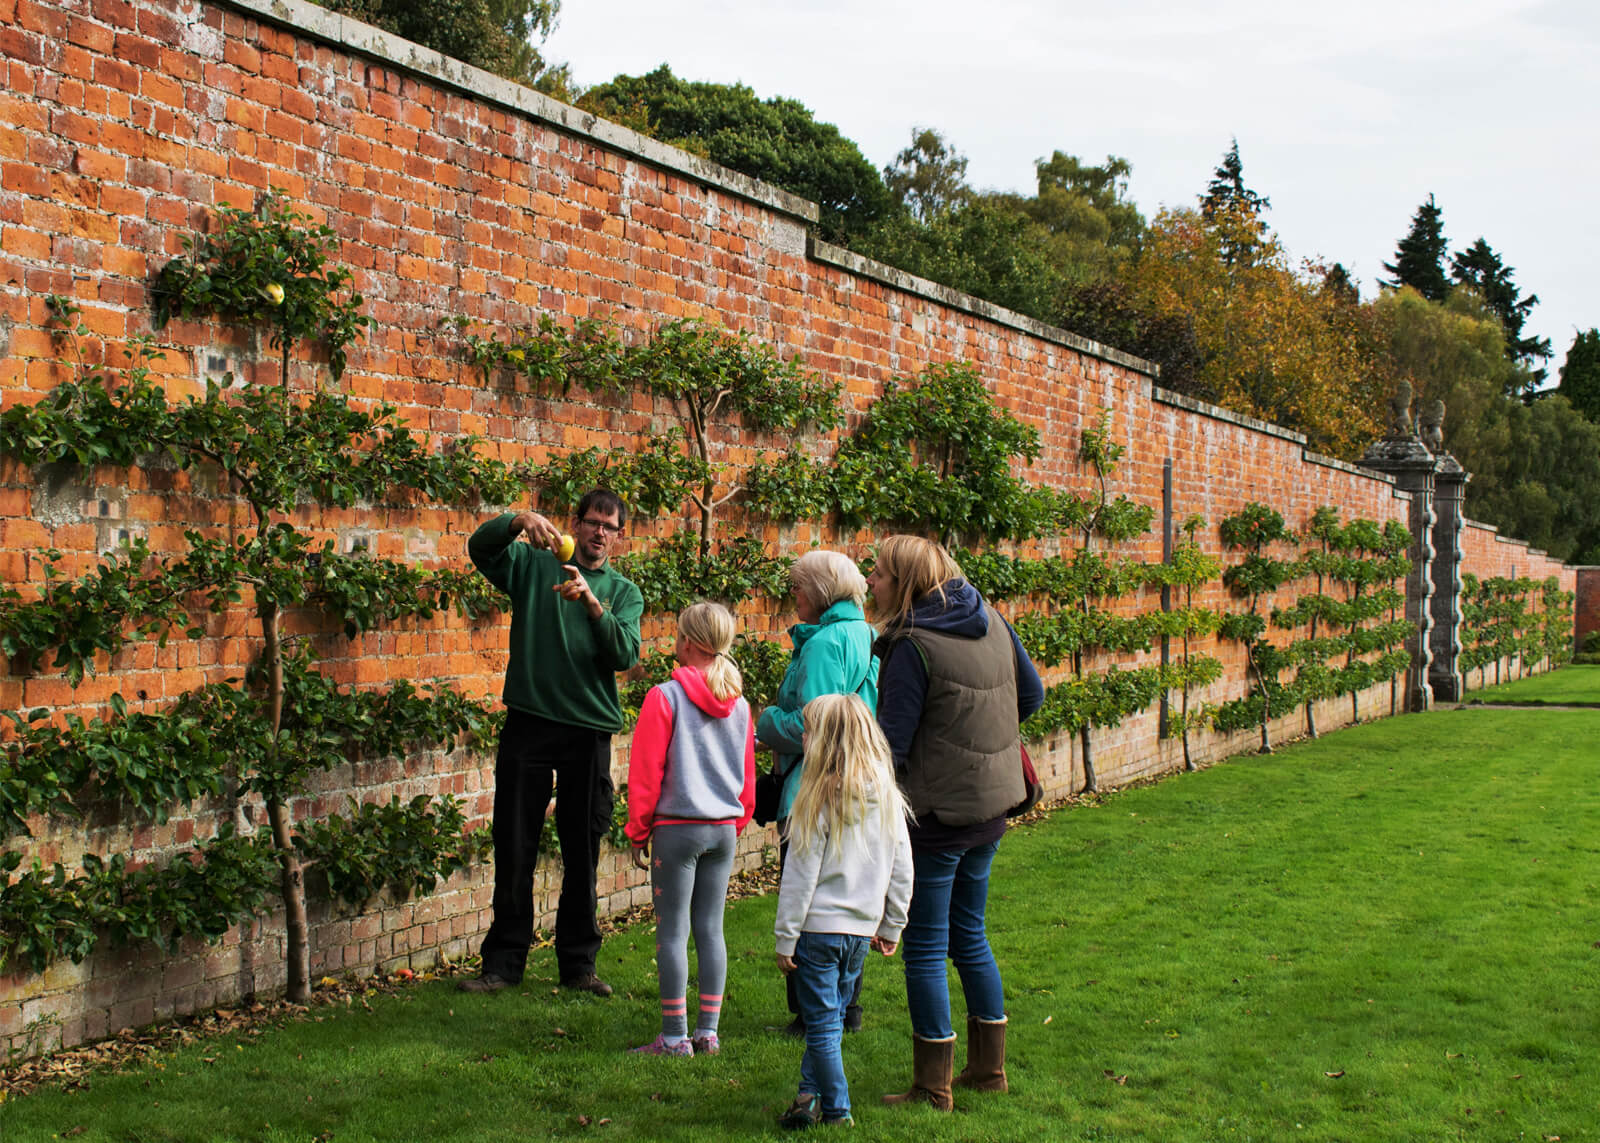 A family learning about the plants on the red brick wall at the Walled Garden at Glamis Castle.